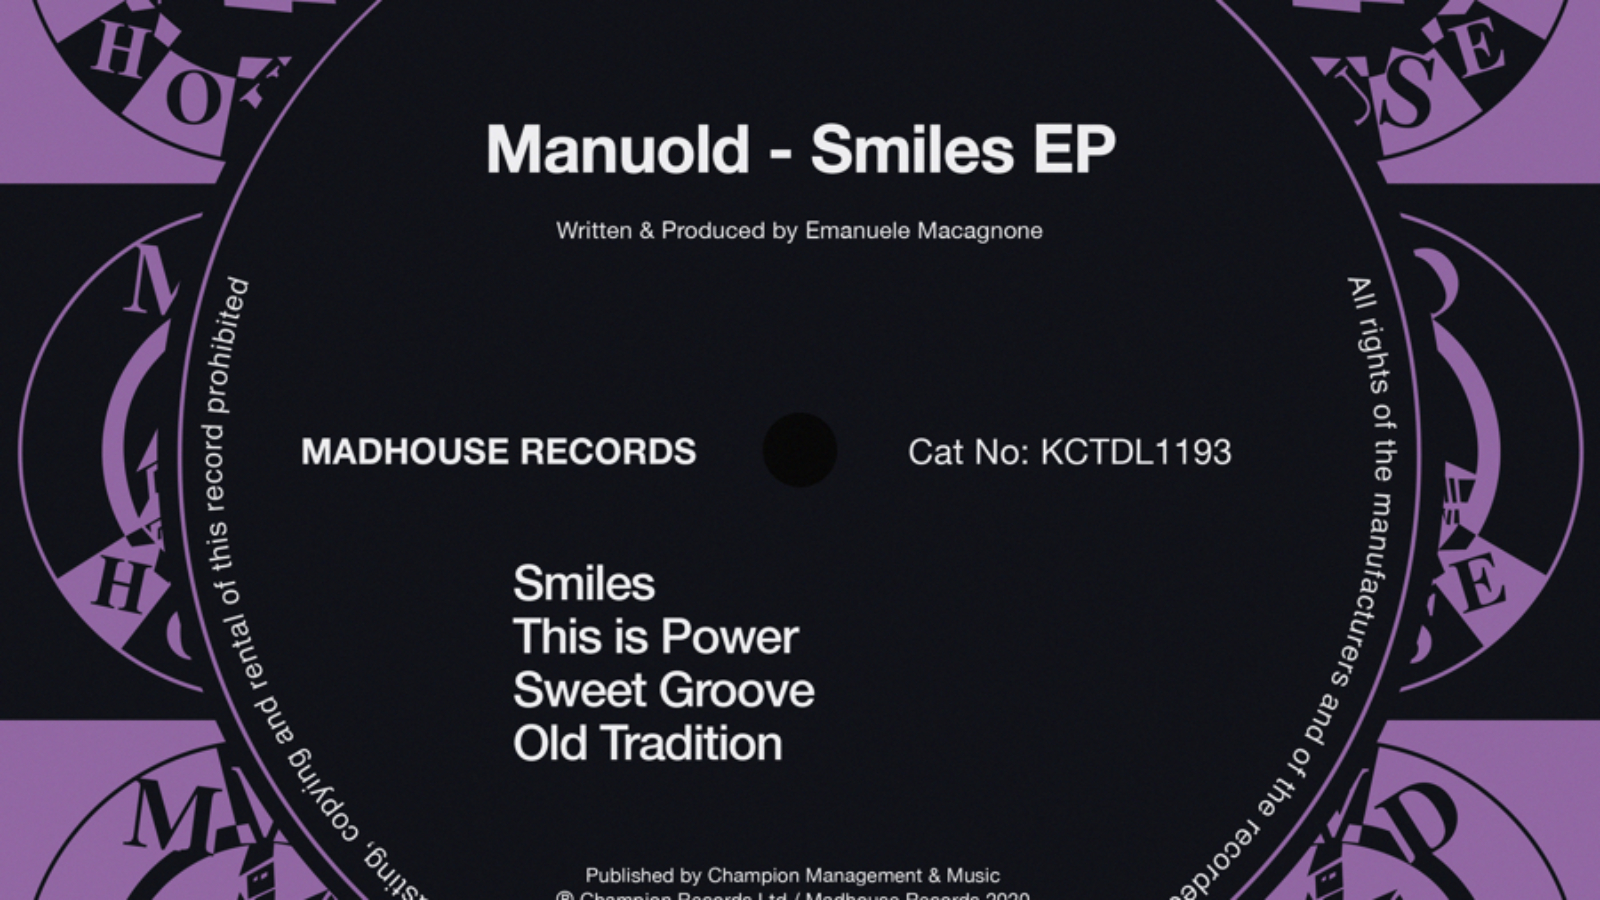 KCT1193 - Manuold - Smiles EP - Digital Artwork